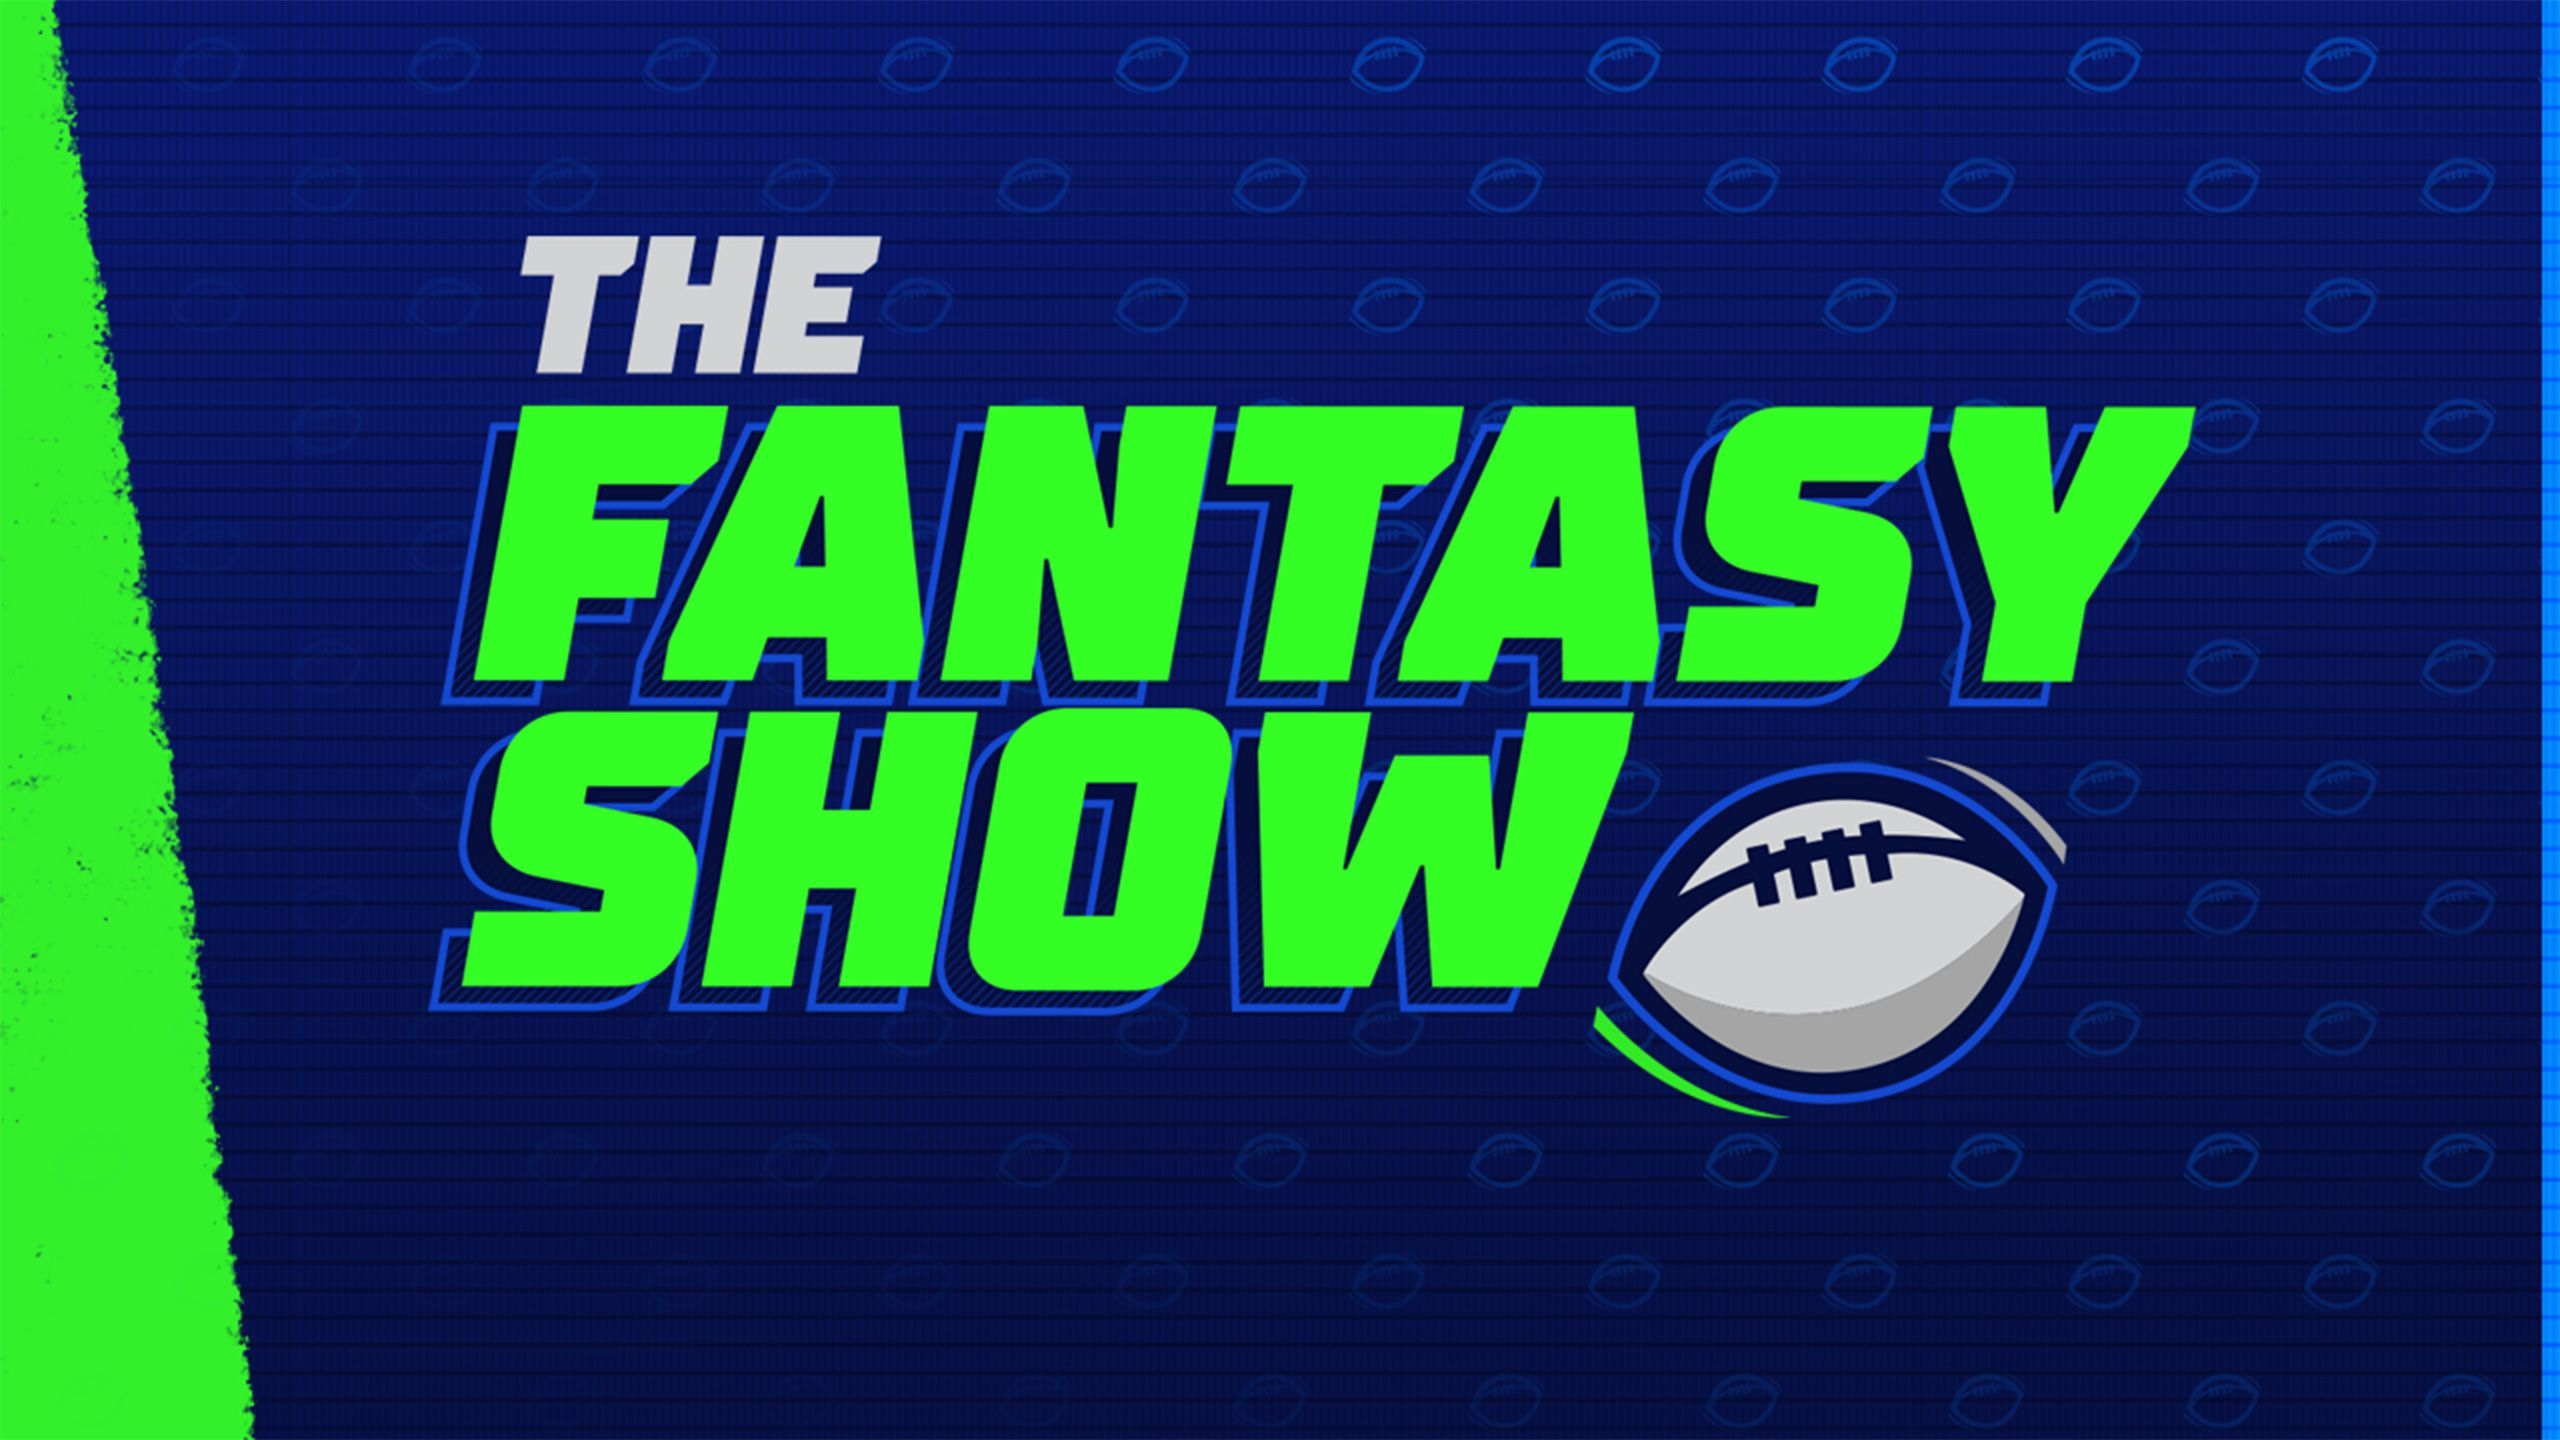 Mon, 11/20 - The Fantasy Show presented by E*Trade